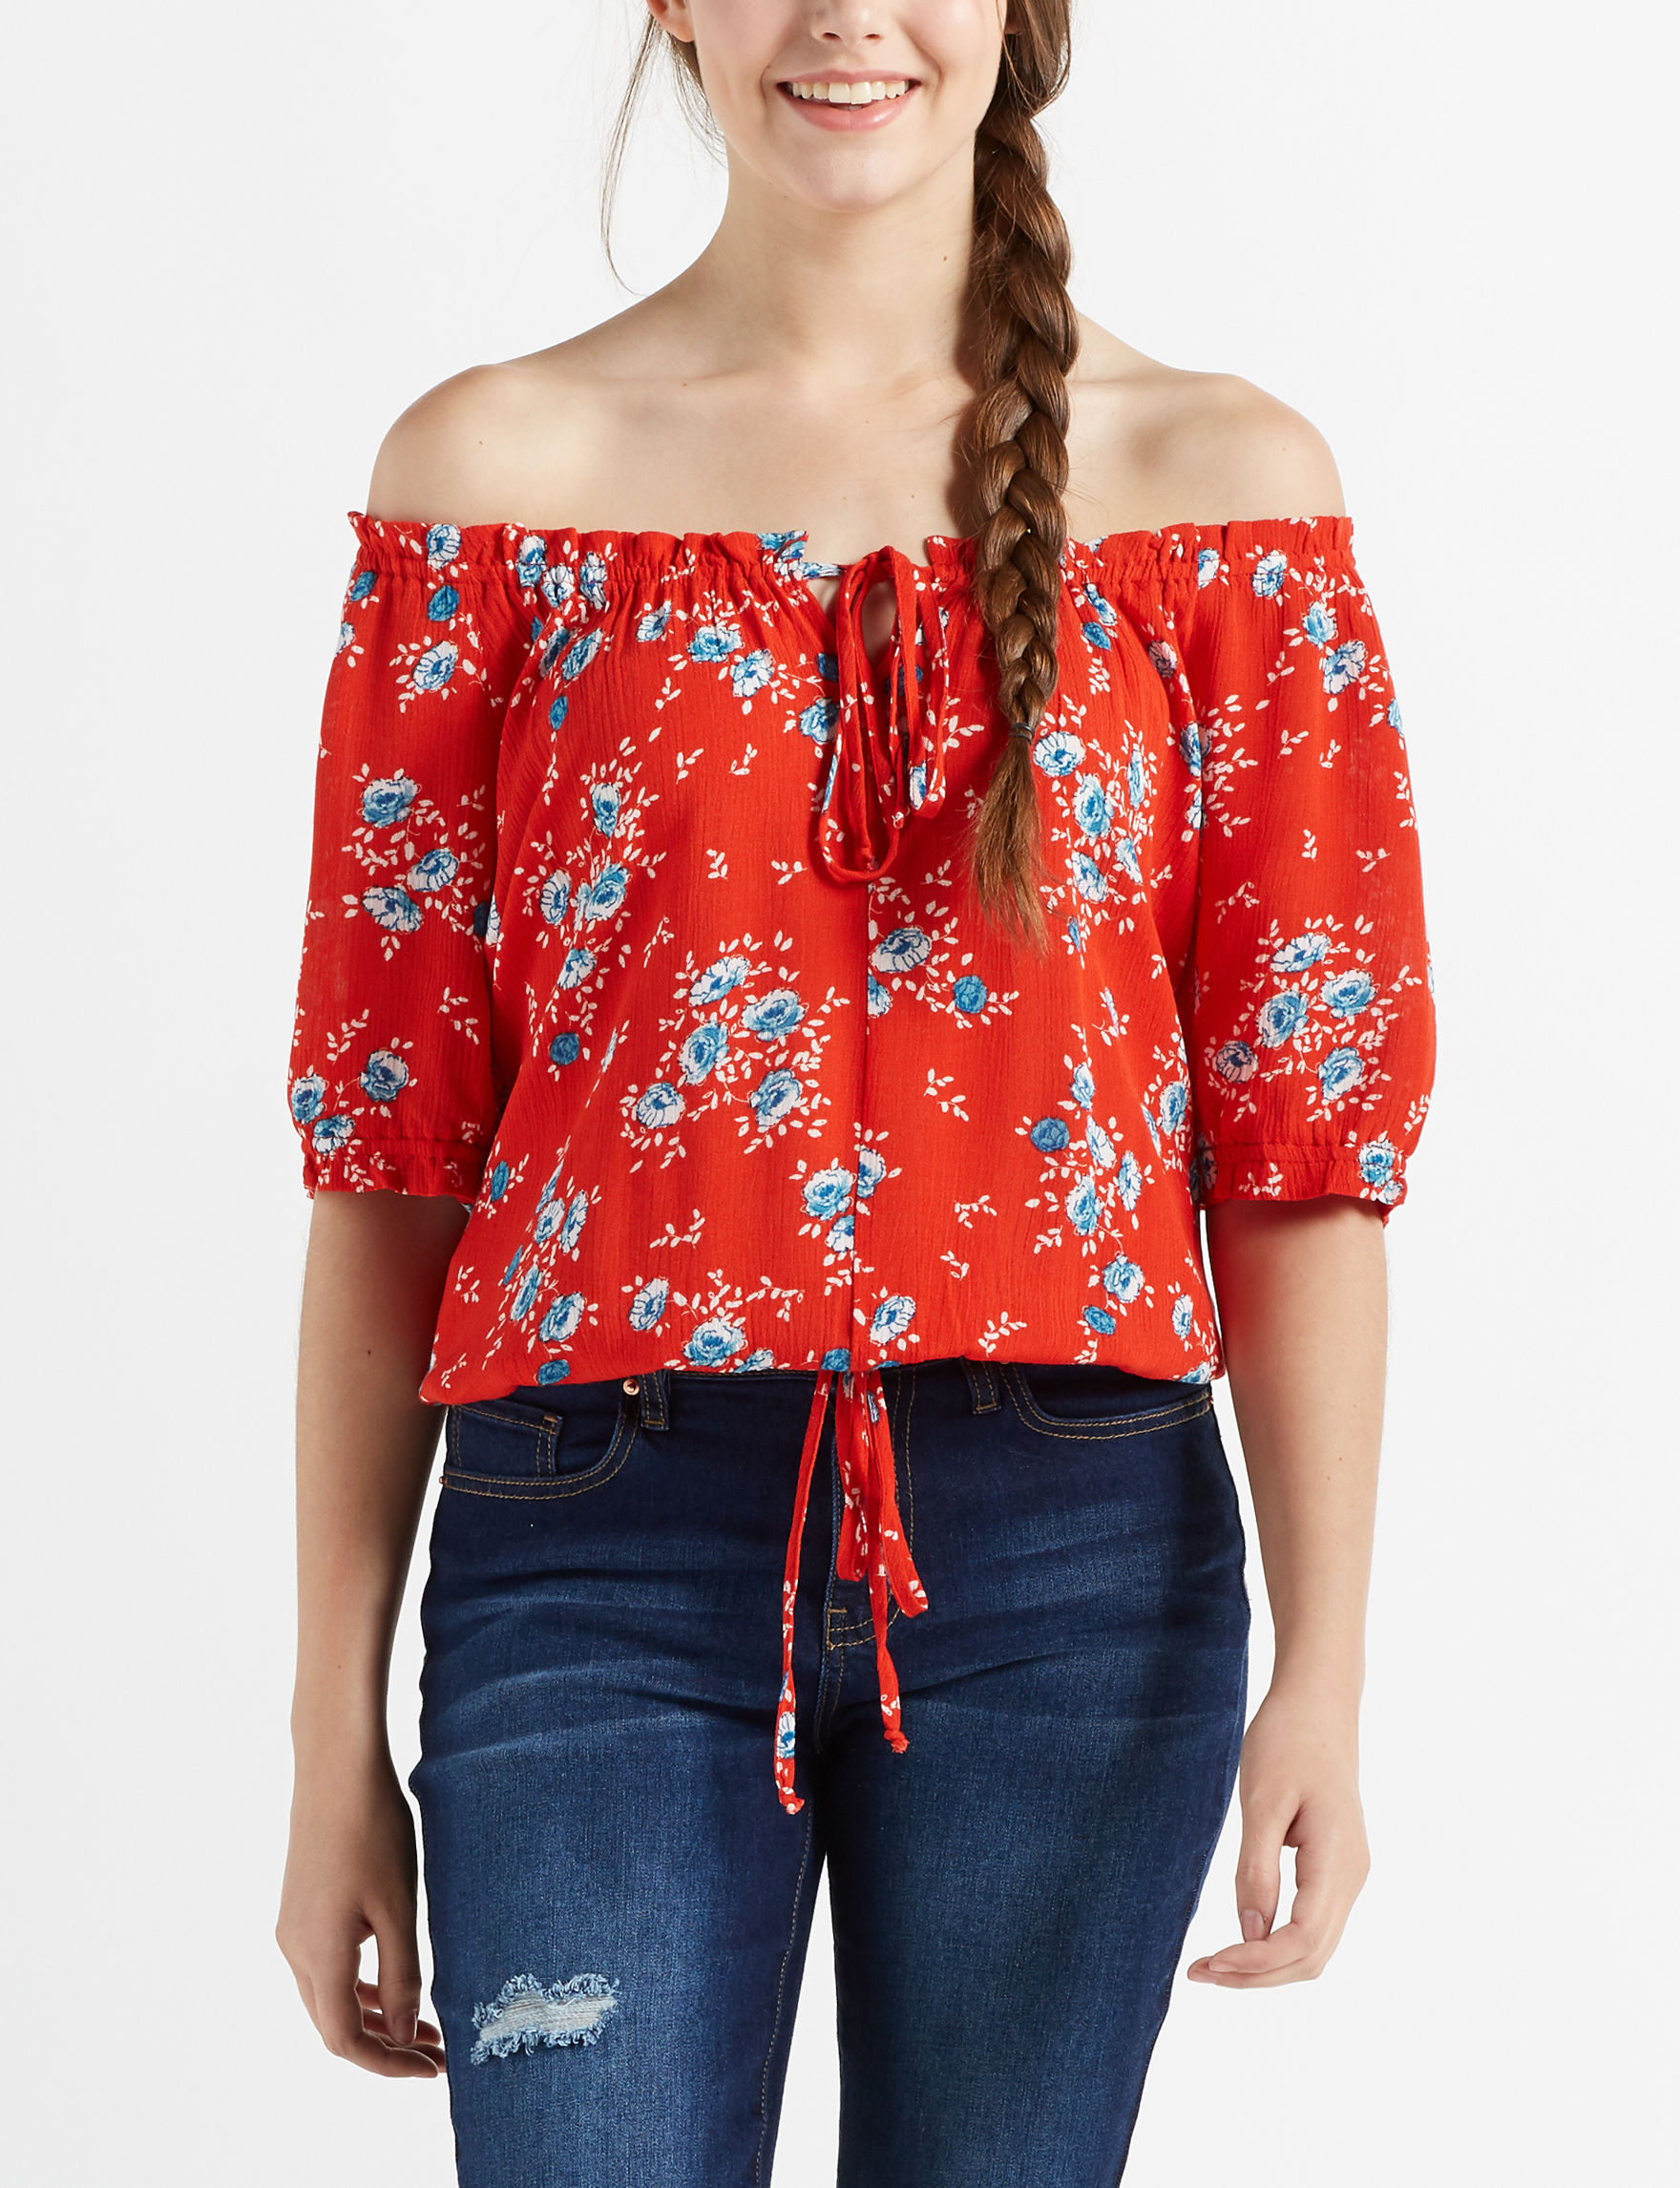 Wishful Park Red / Navy Shirts & Blouses